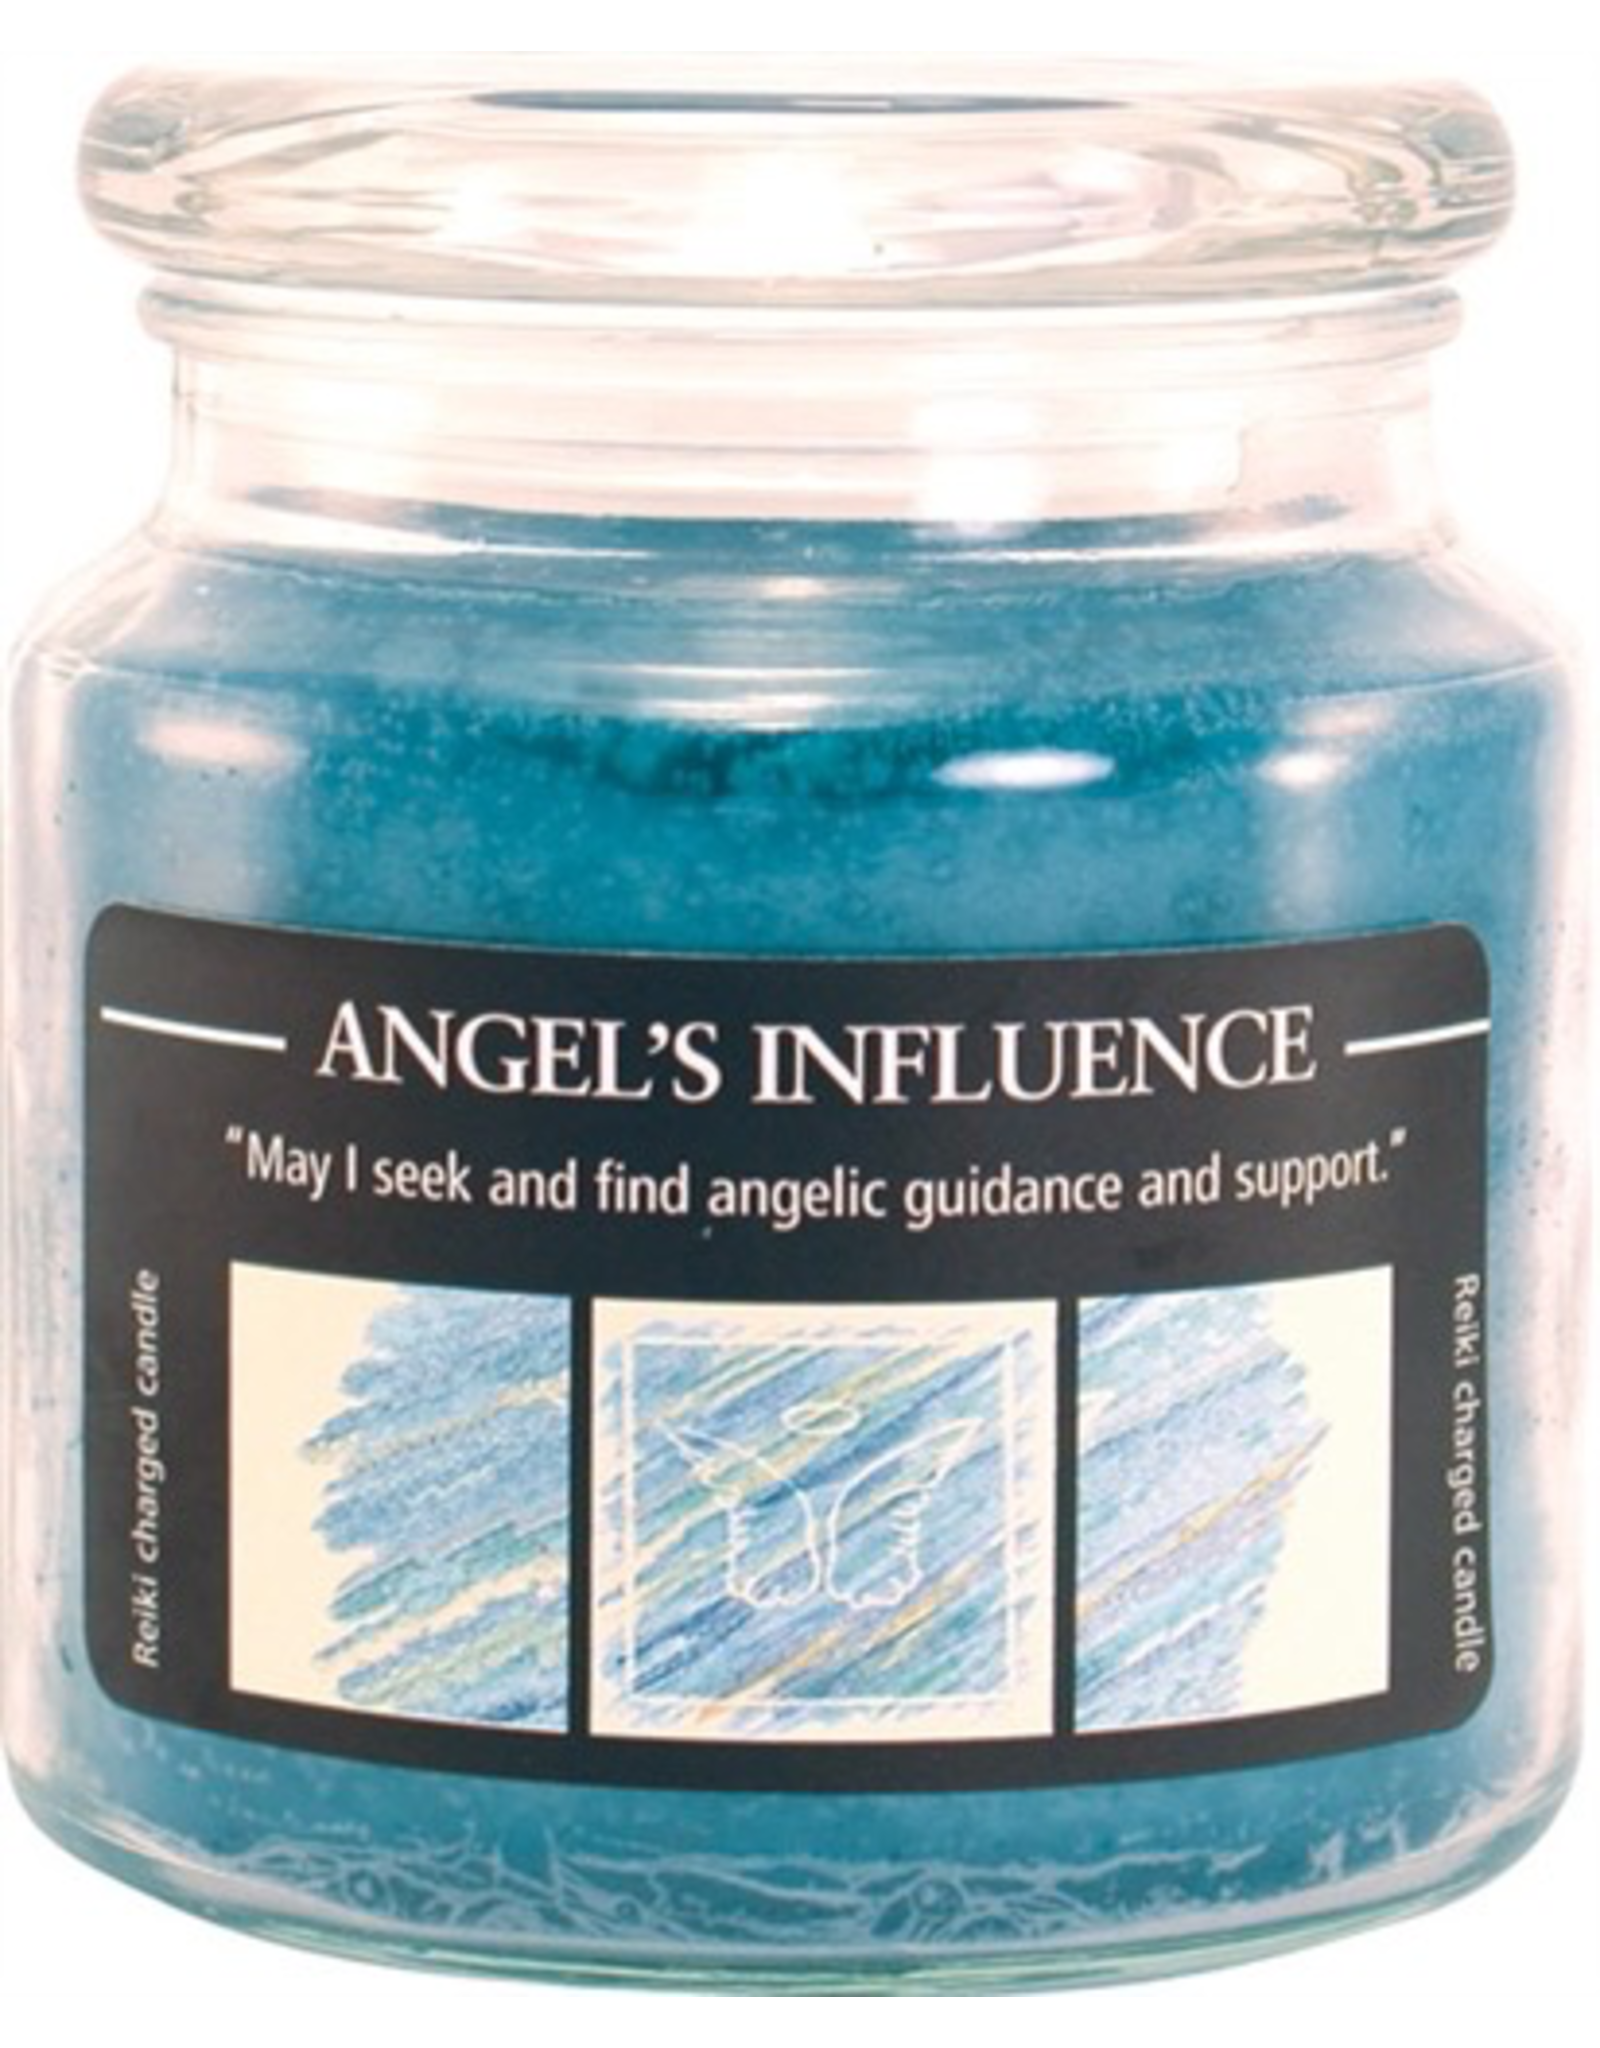 Crystal Journey 16 oz Angel's Influence Jar Candle